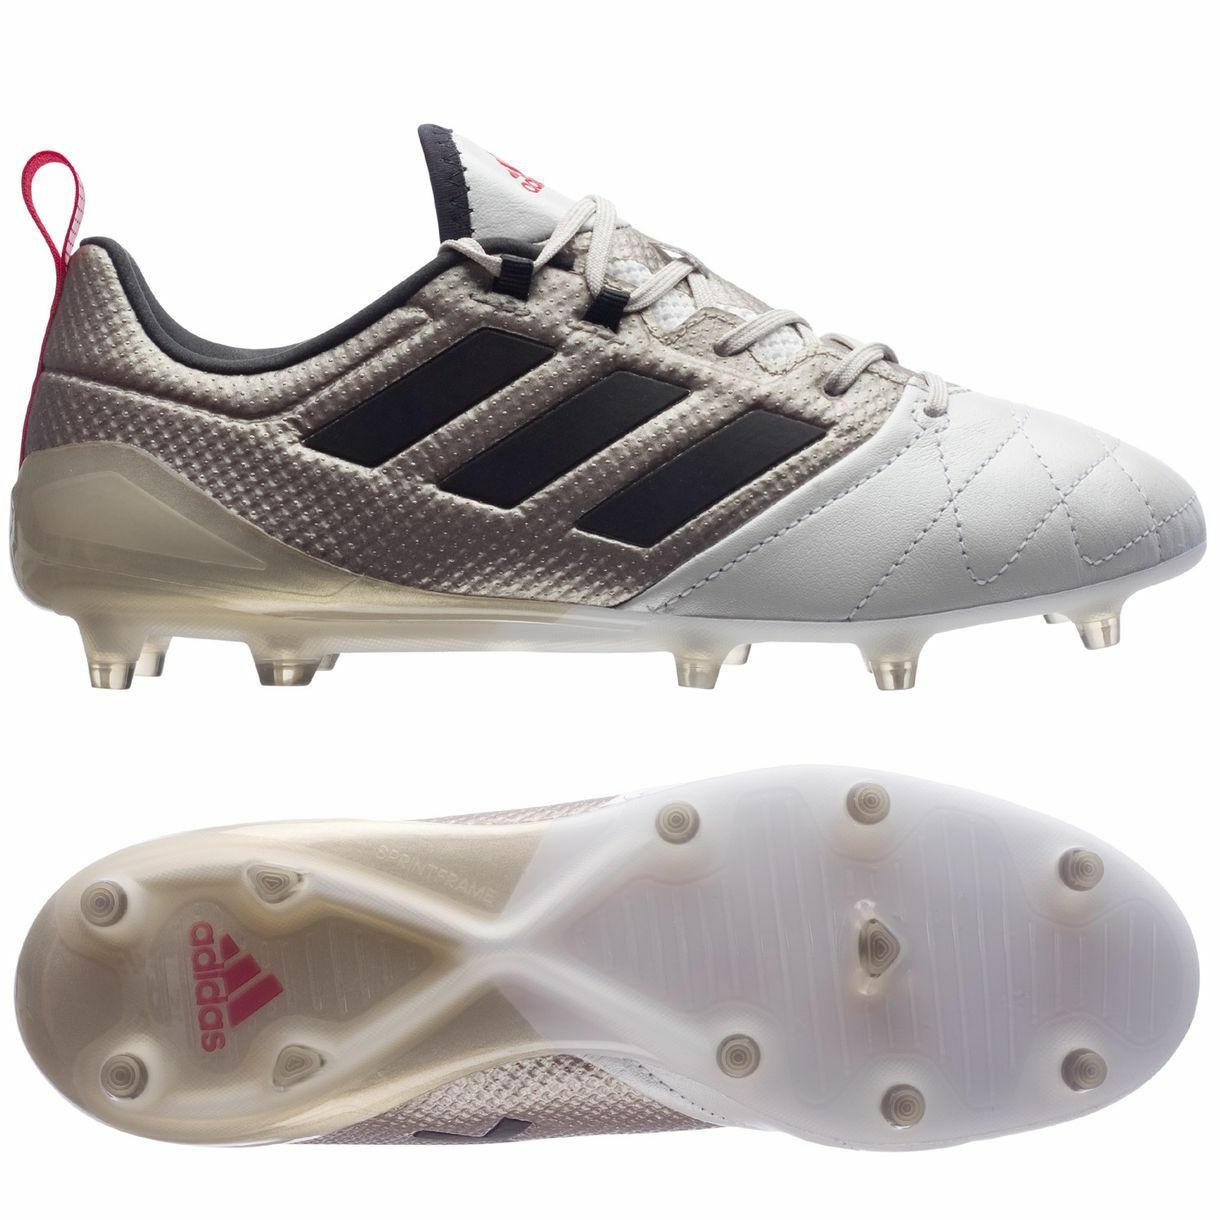 Women's Soccer Cleats & Clothing | adidas US